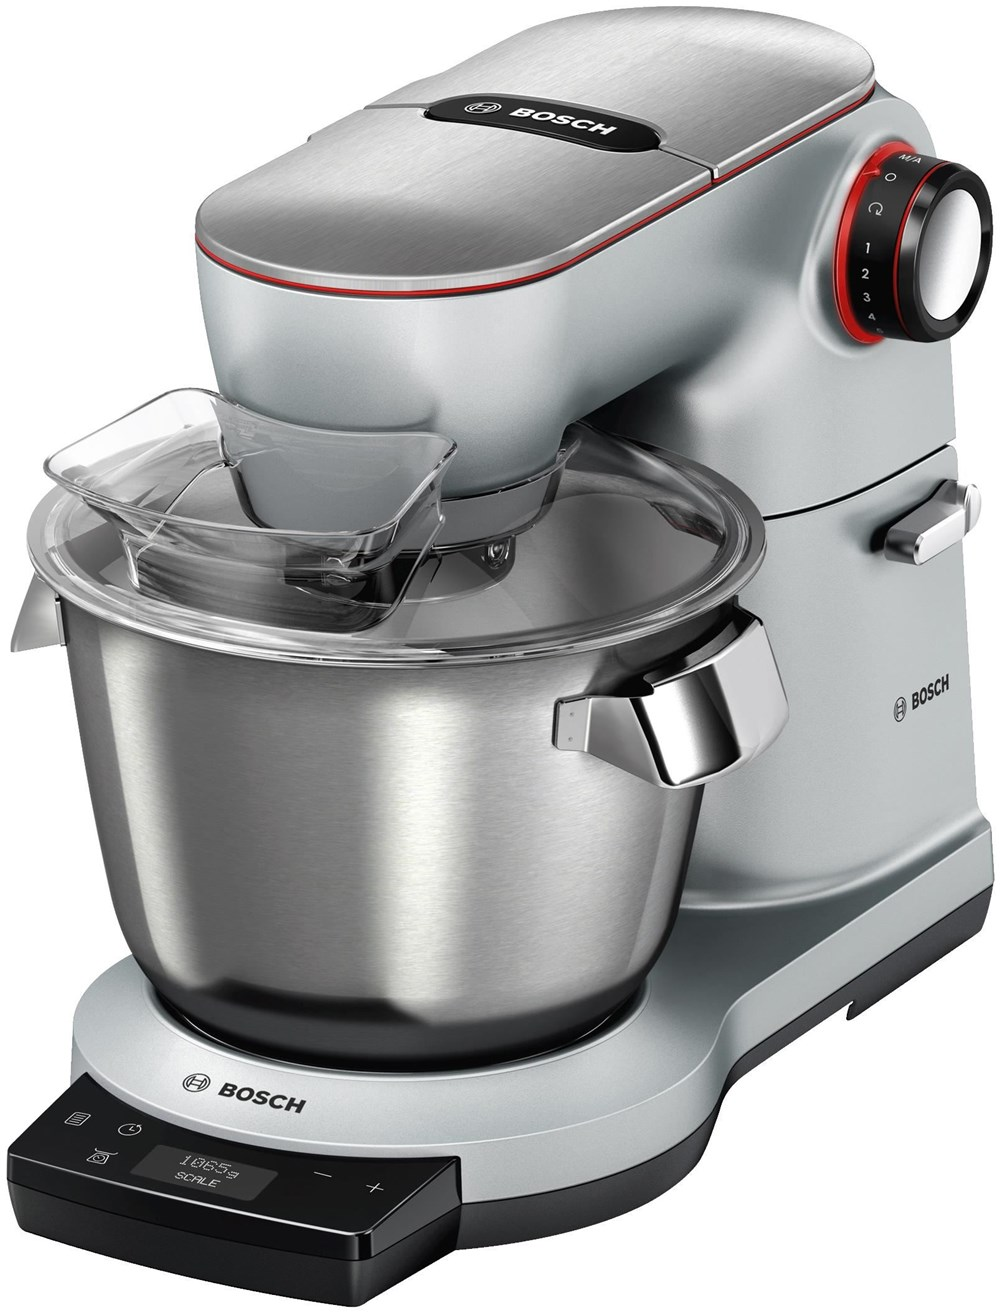 Bosch MUM9AX5S00 Küchenmaschine OptiMUM platinum silver - Kitchen ...